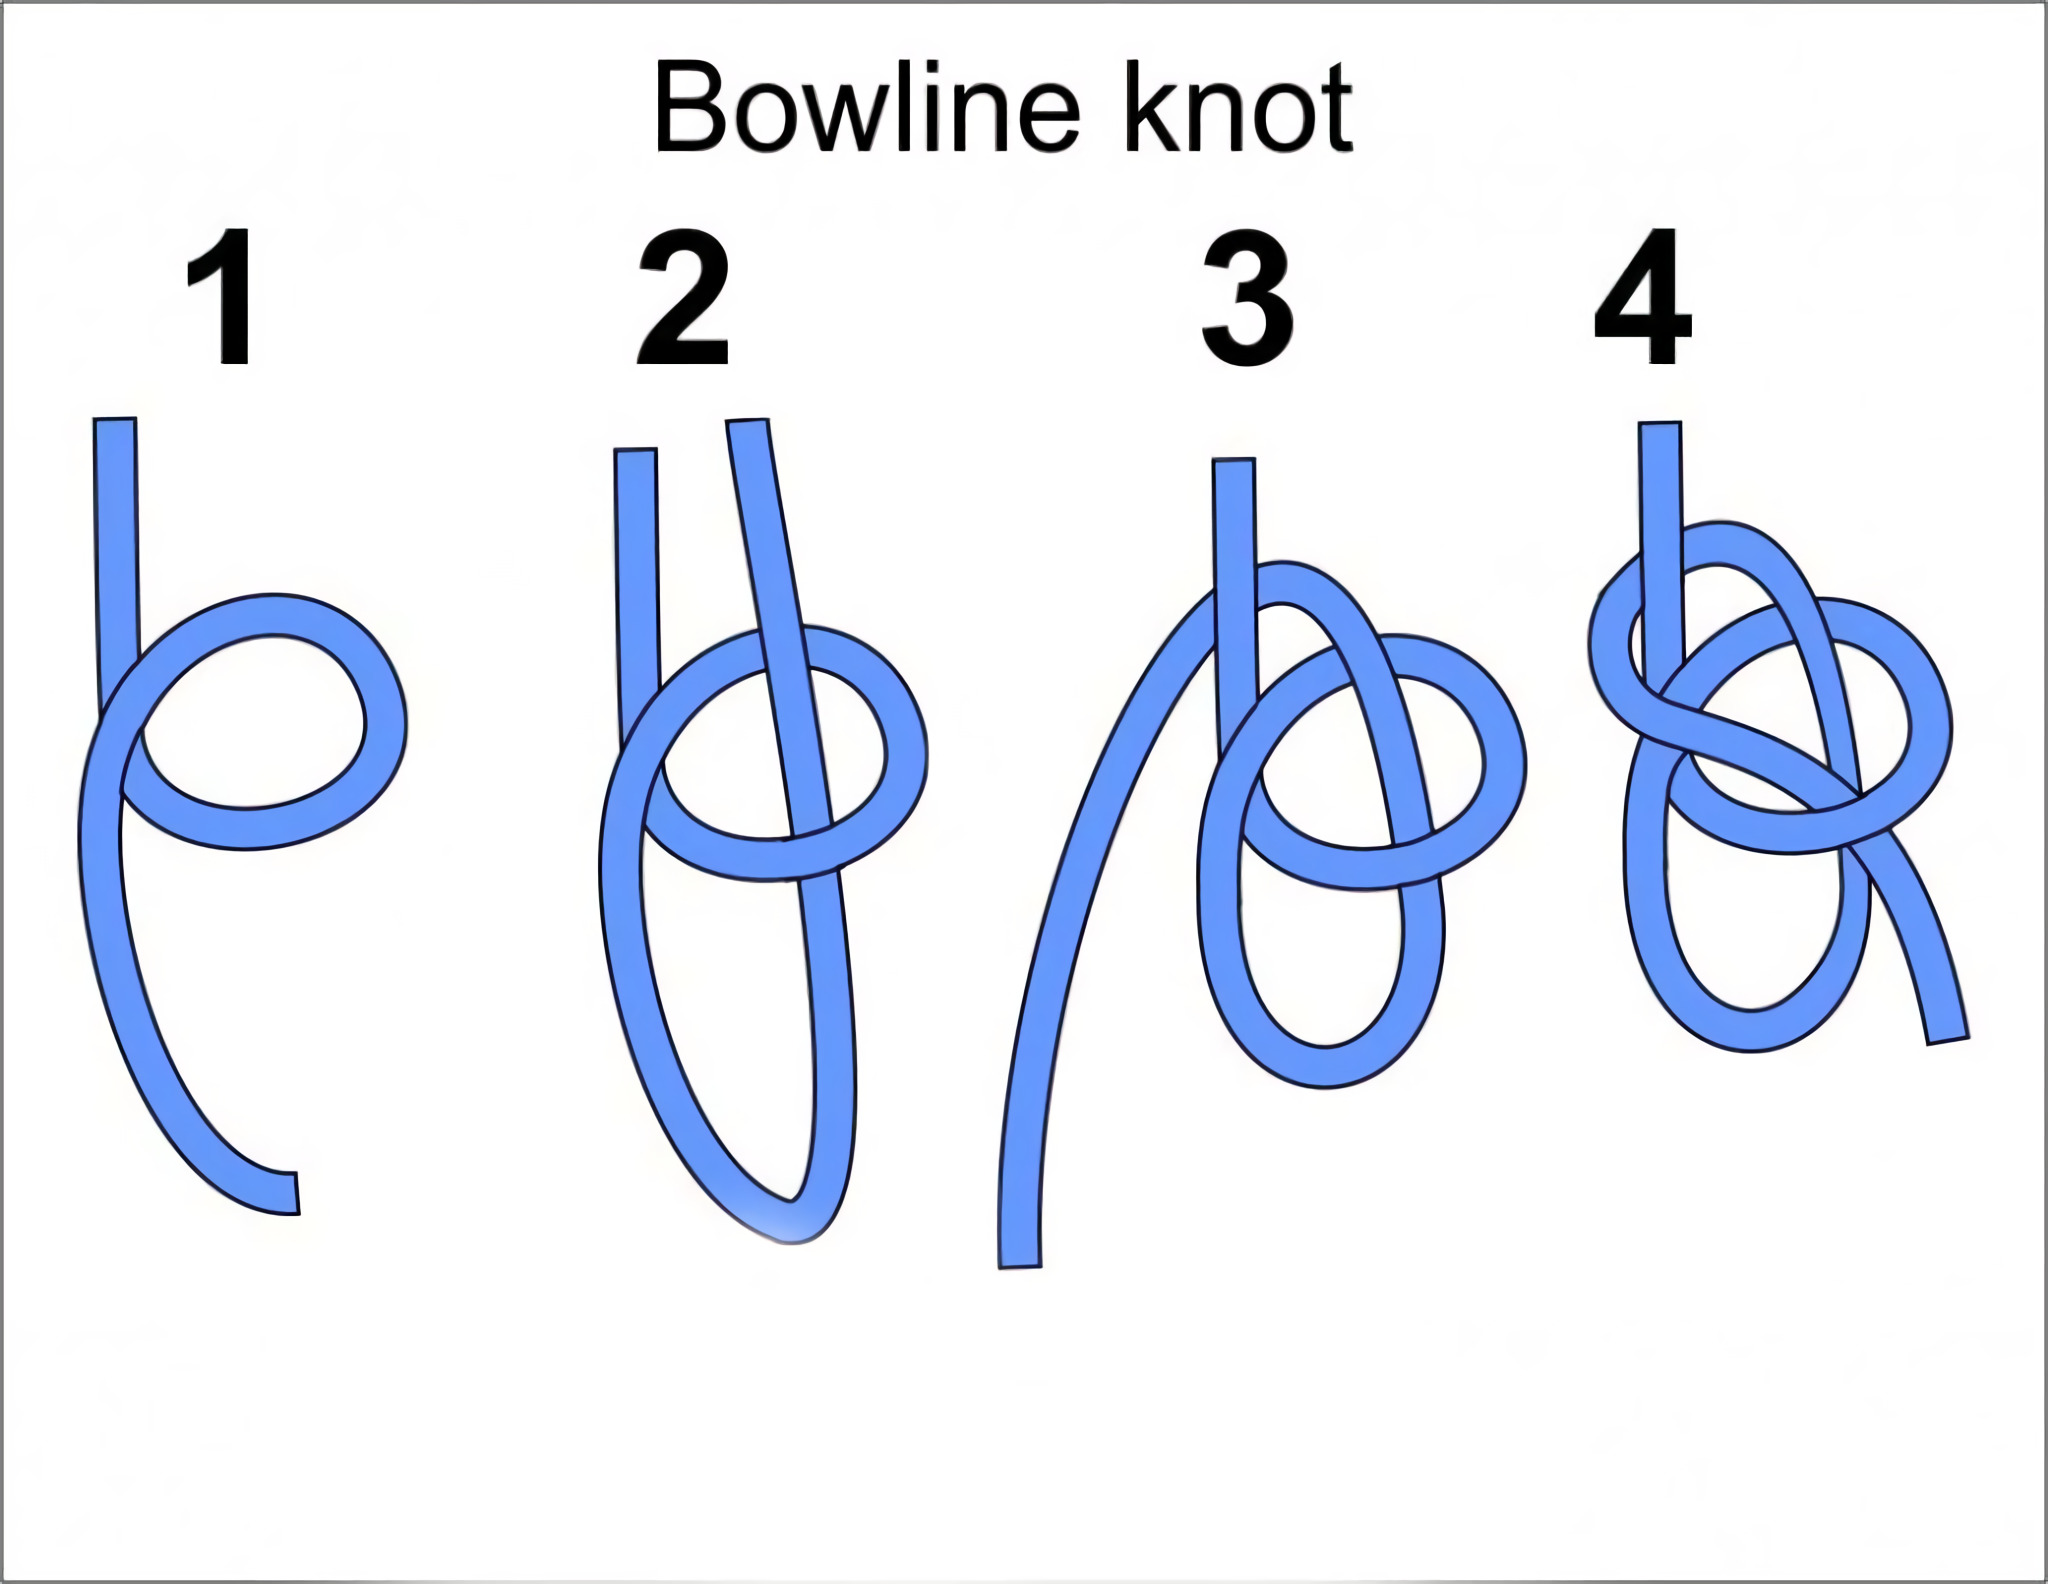 this is what a bowline knot looks like